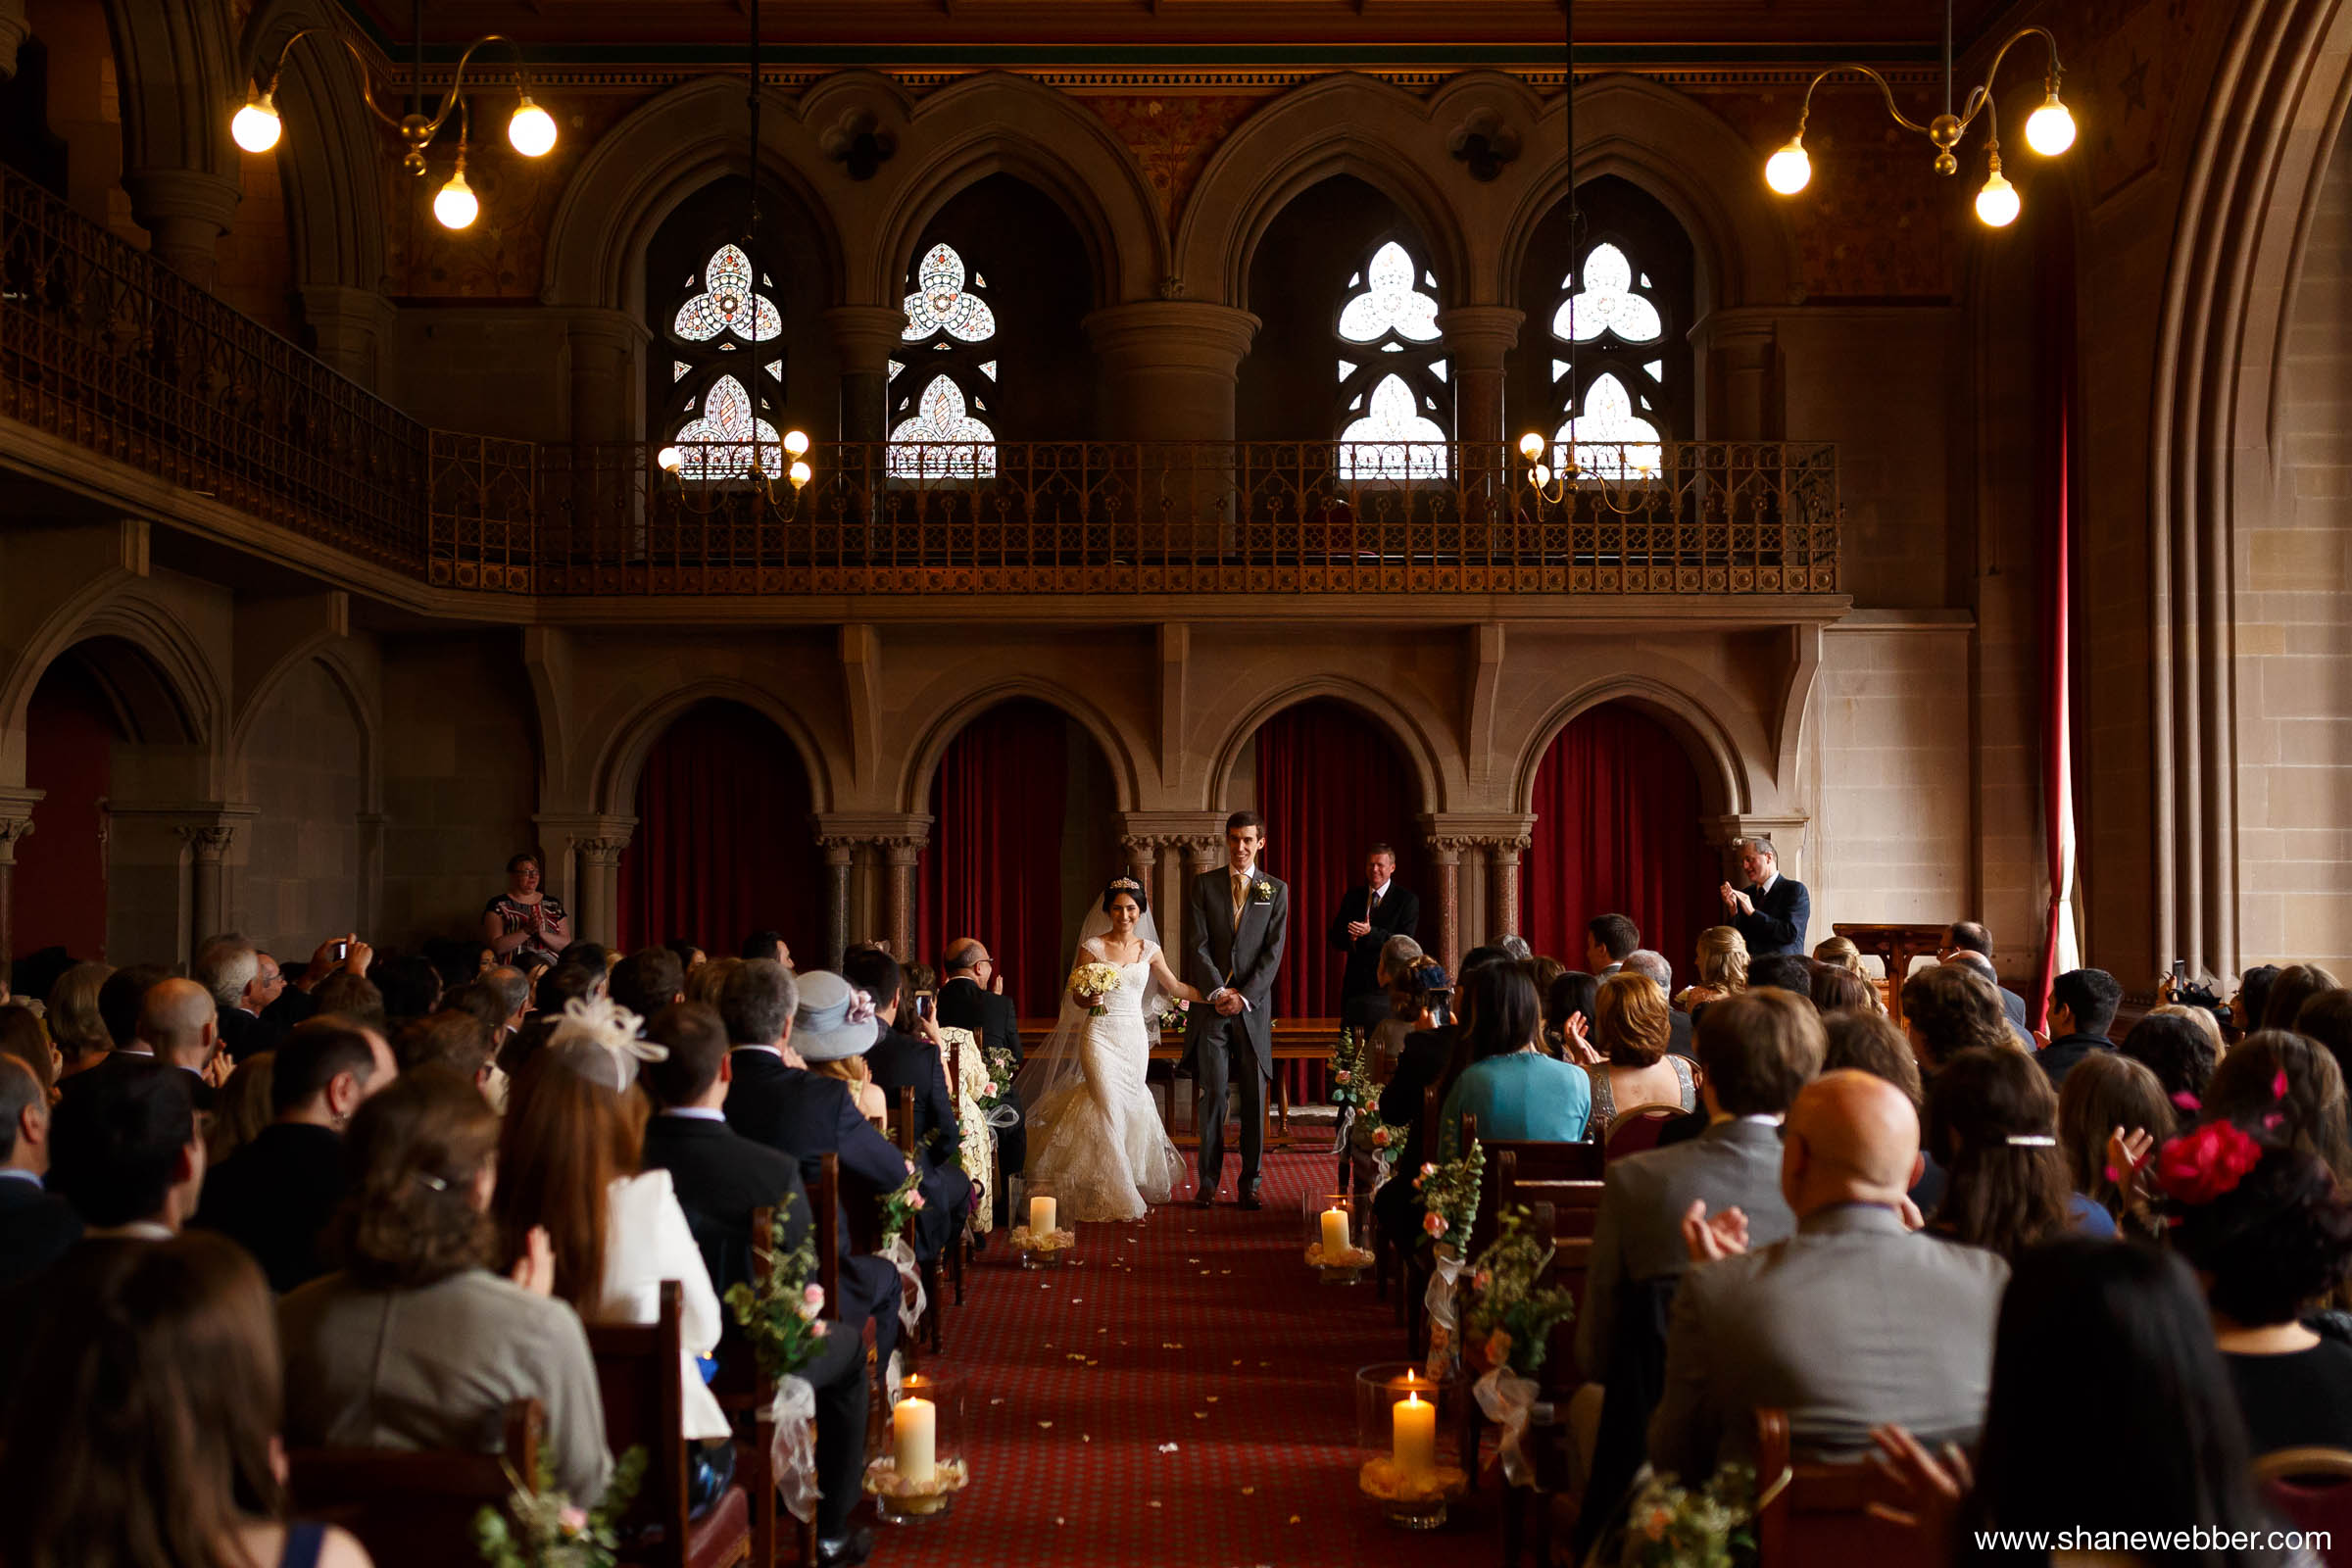 Ceremony at the Manchester Town Hall